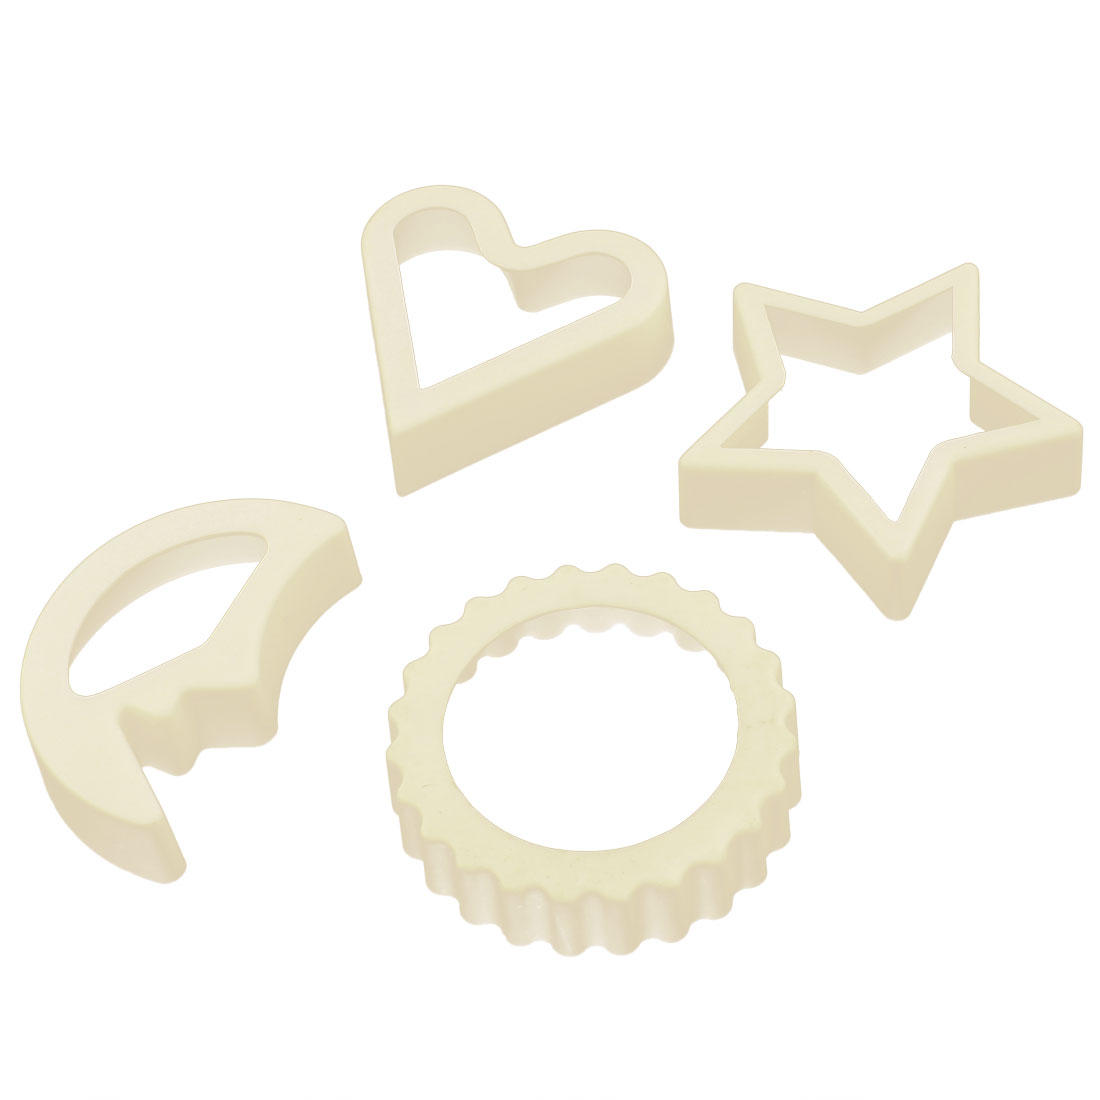 DIY Cake Cookies Biscuit Plastic Heart Starriness Floriated Moon Shape Cutter Baking Molds Kitchen Embossing Tool 4 in1